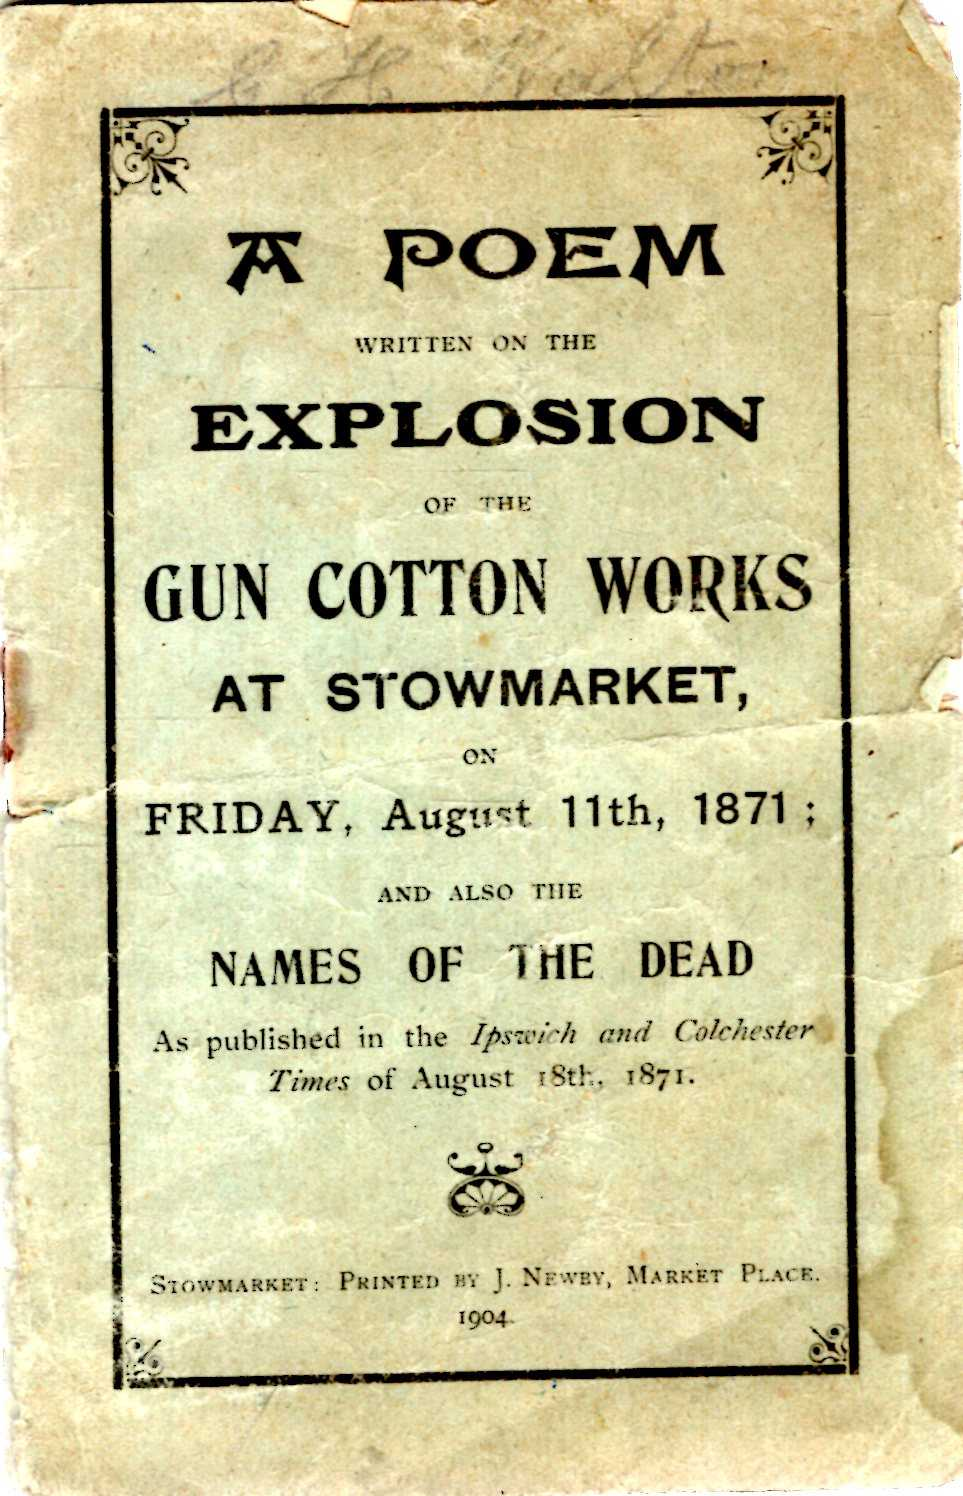 Image for A Poem Written on the Explosion of the Gun Cottom Works at Stowmarket on Friday August 11th, 1871 : and also Names of the Dead